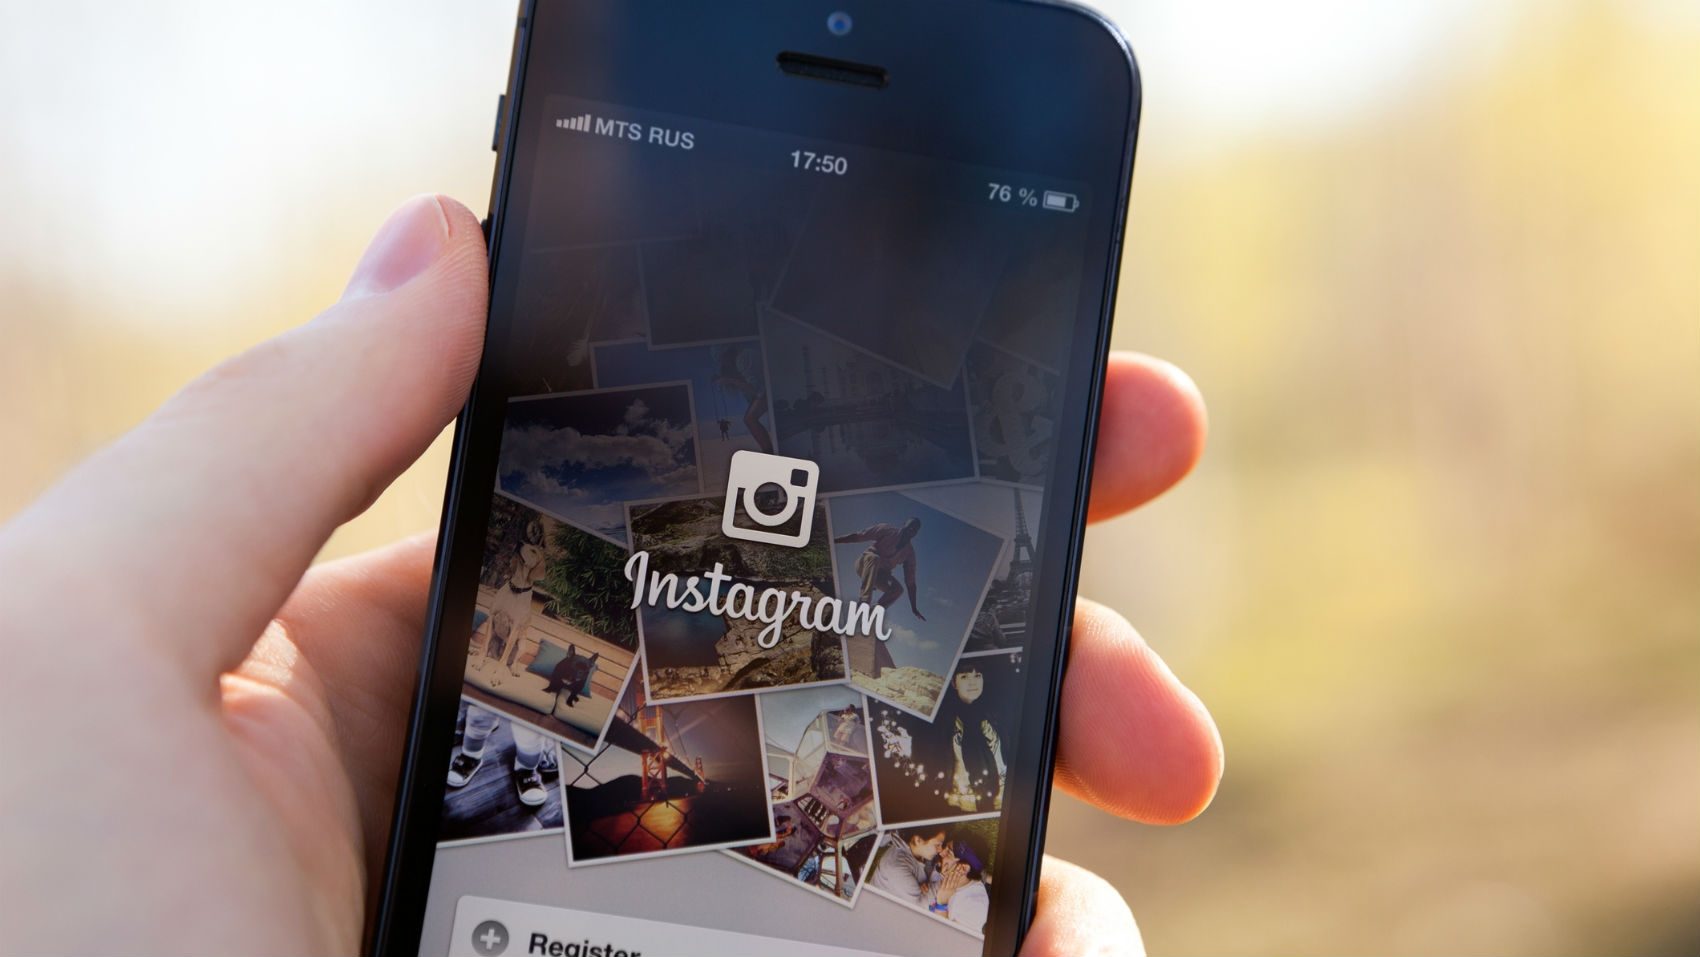 Facebook Says Password Leak Affected 'Millions' of Instagram Users